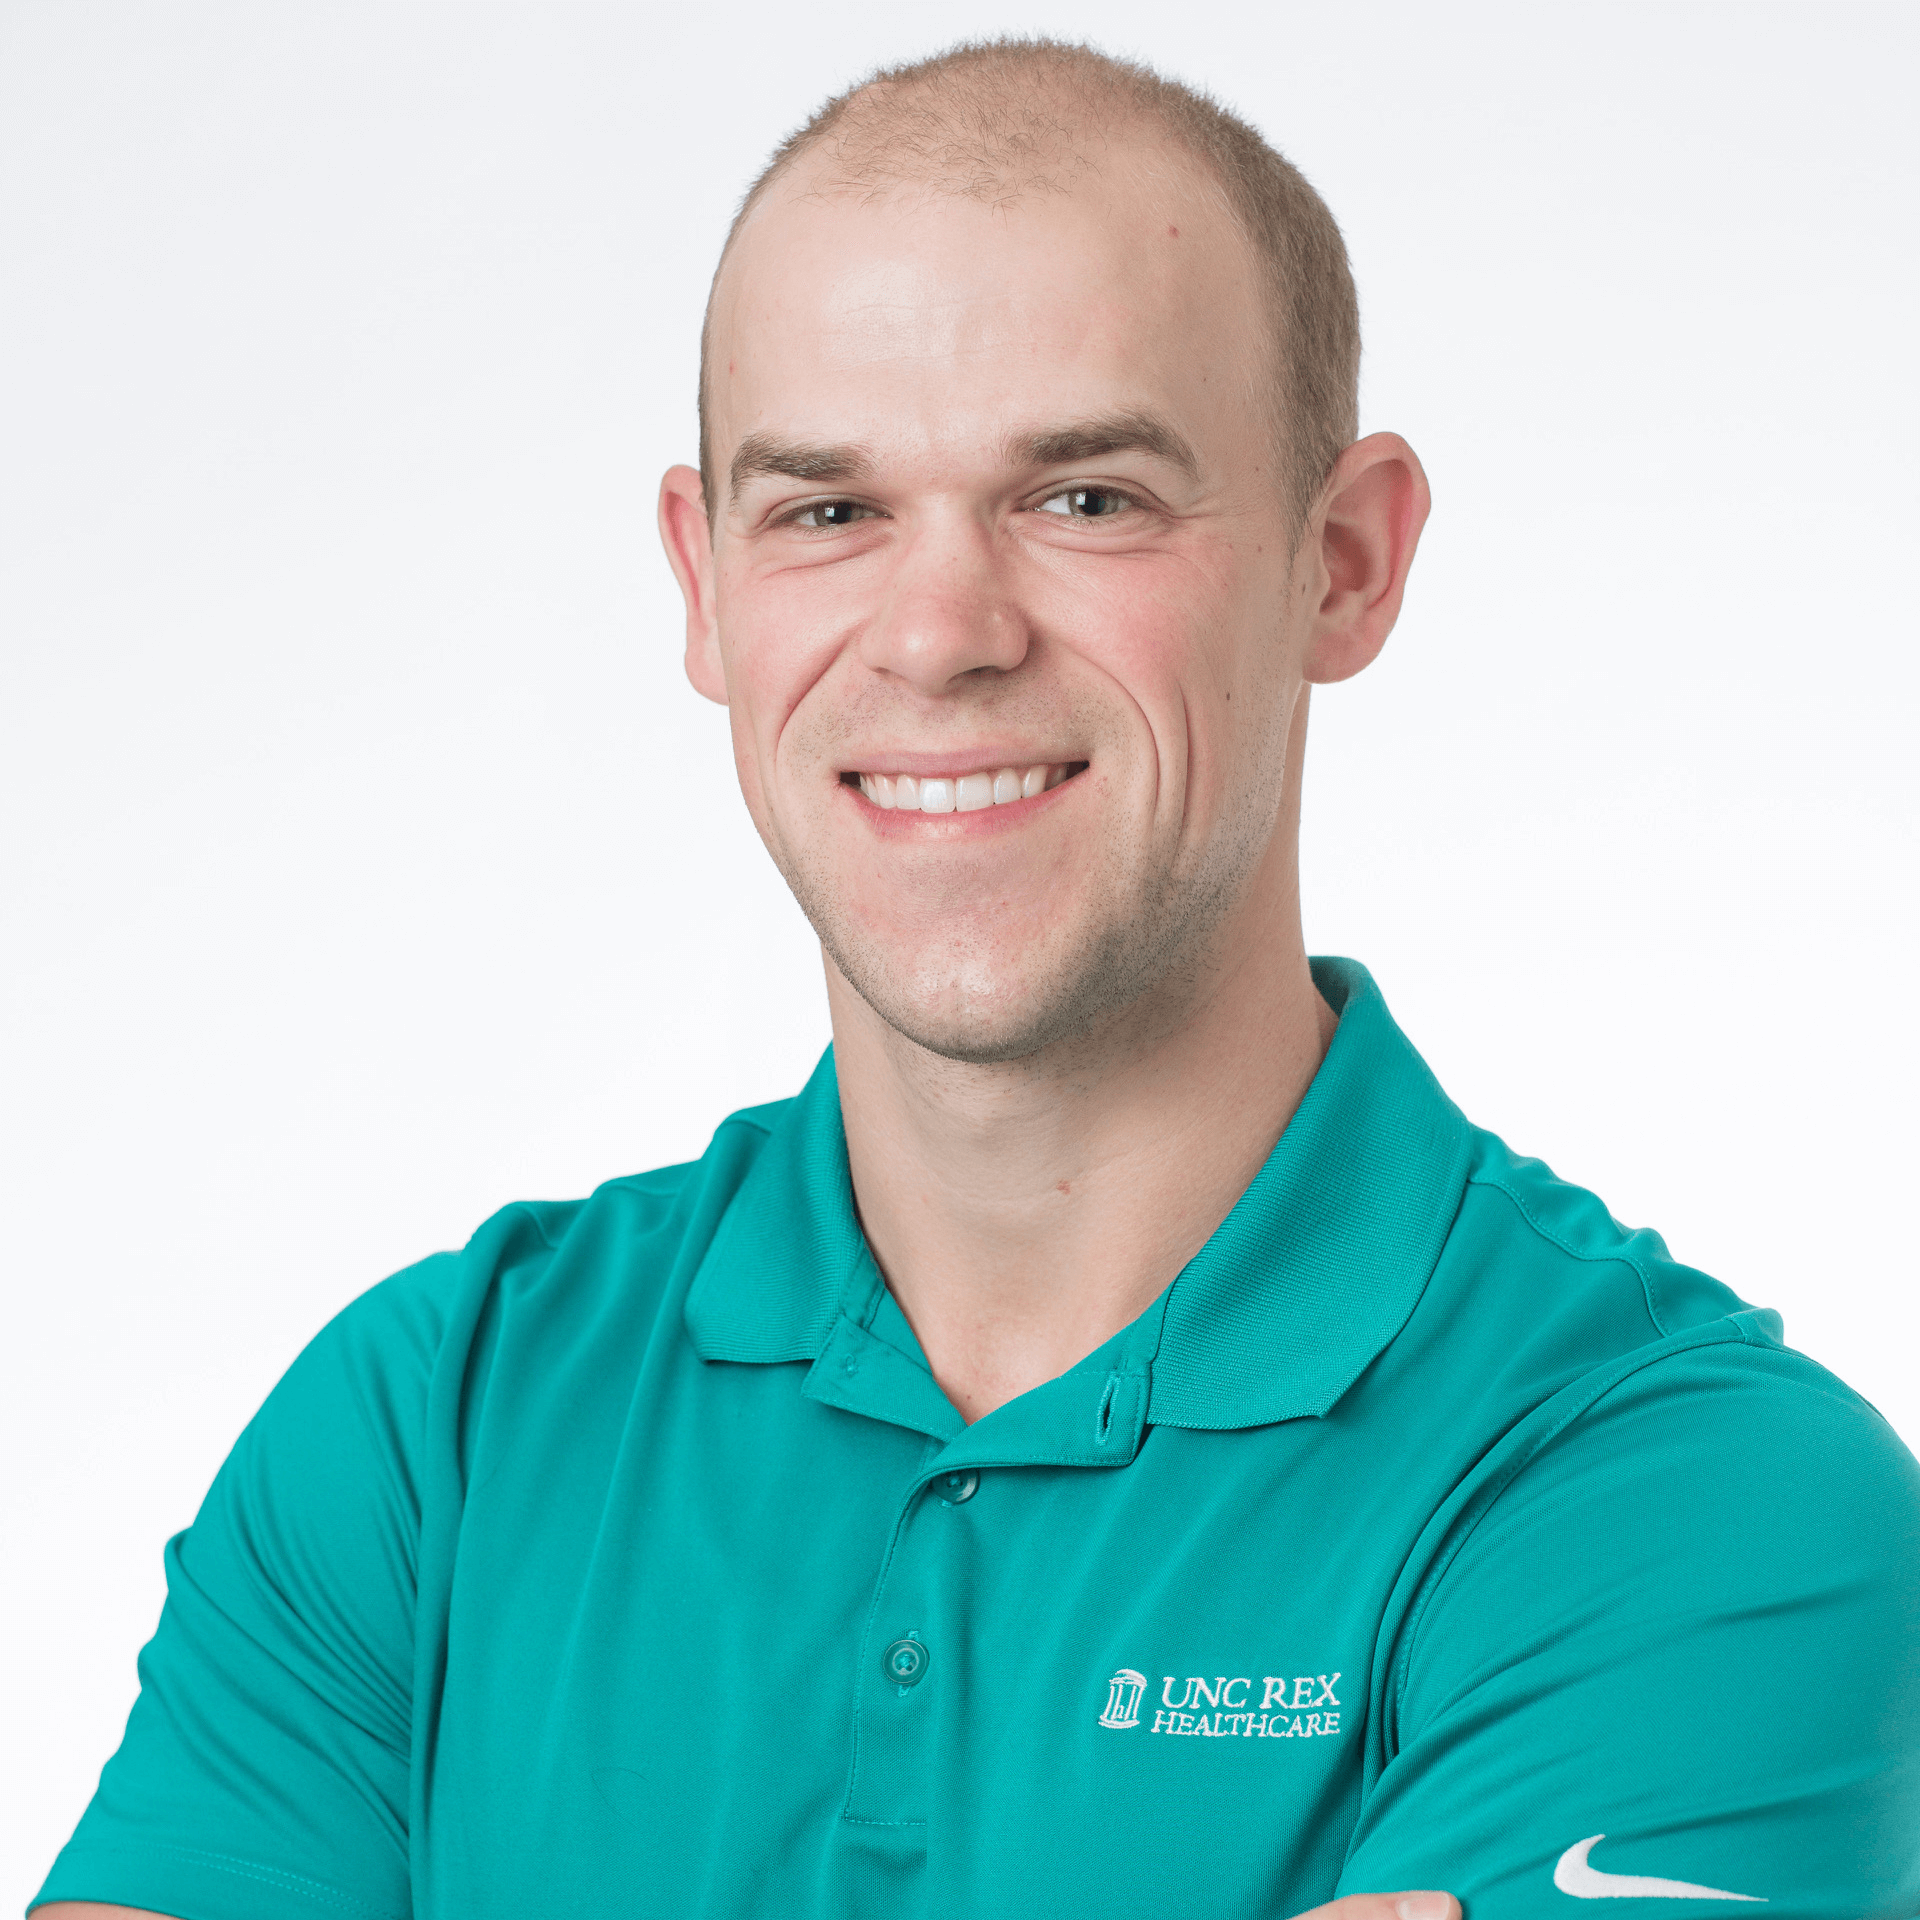 Timothy Danchak, Strength Coach and Functional Training Specialist